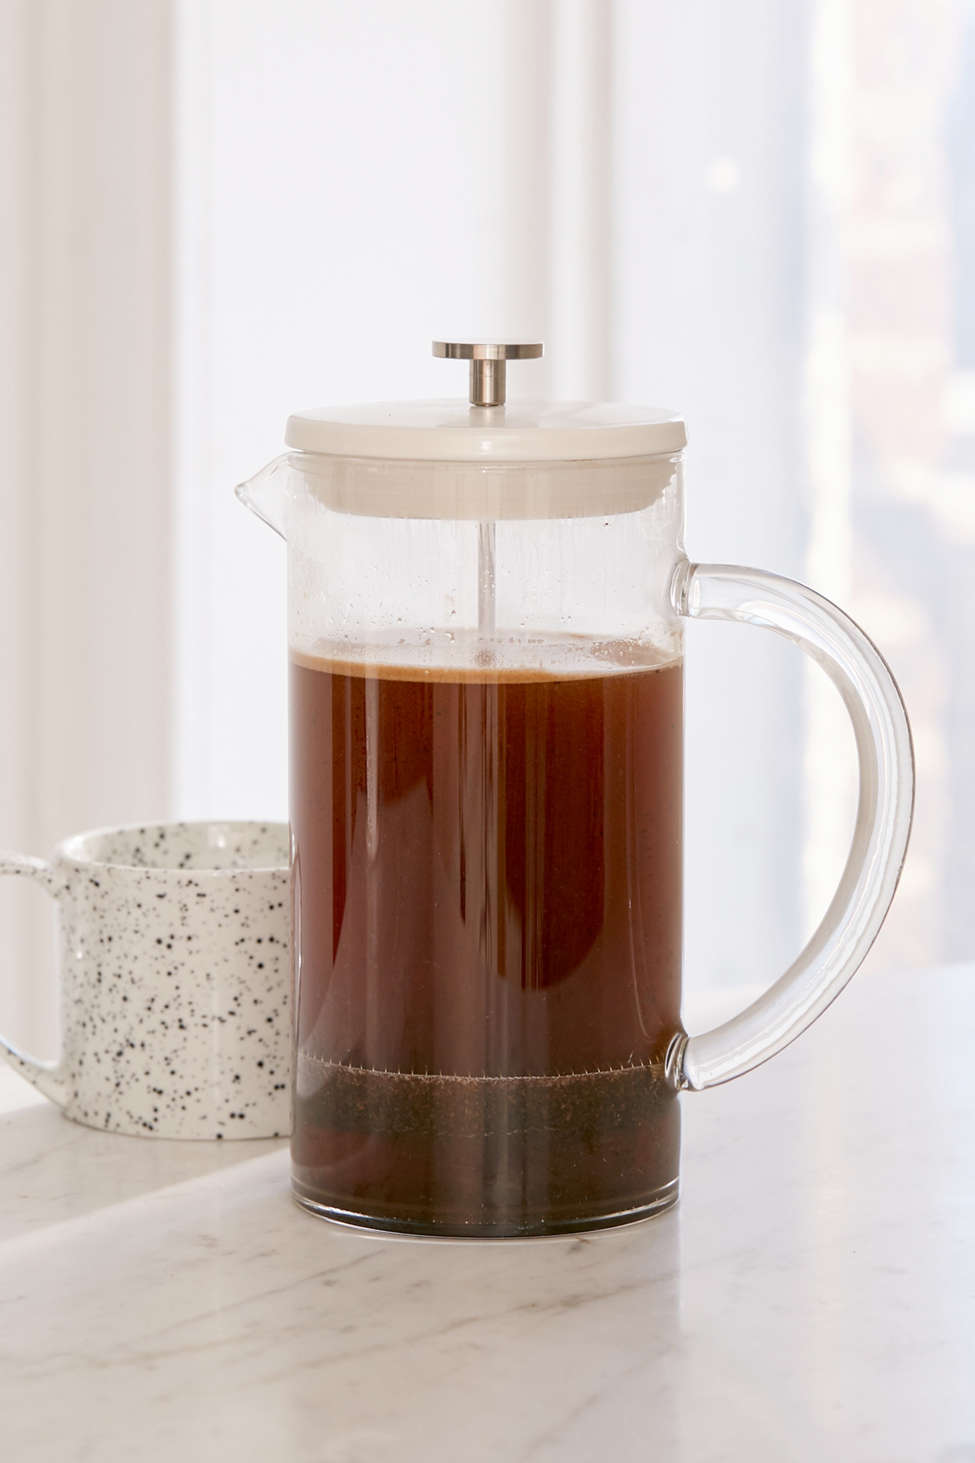 Slide View: 1: 3-in-1 Pour Over Cold Brew Coffee Press Set